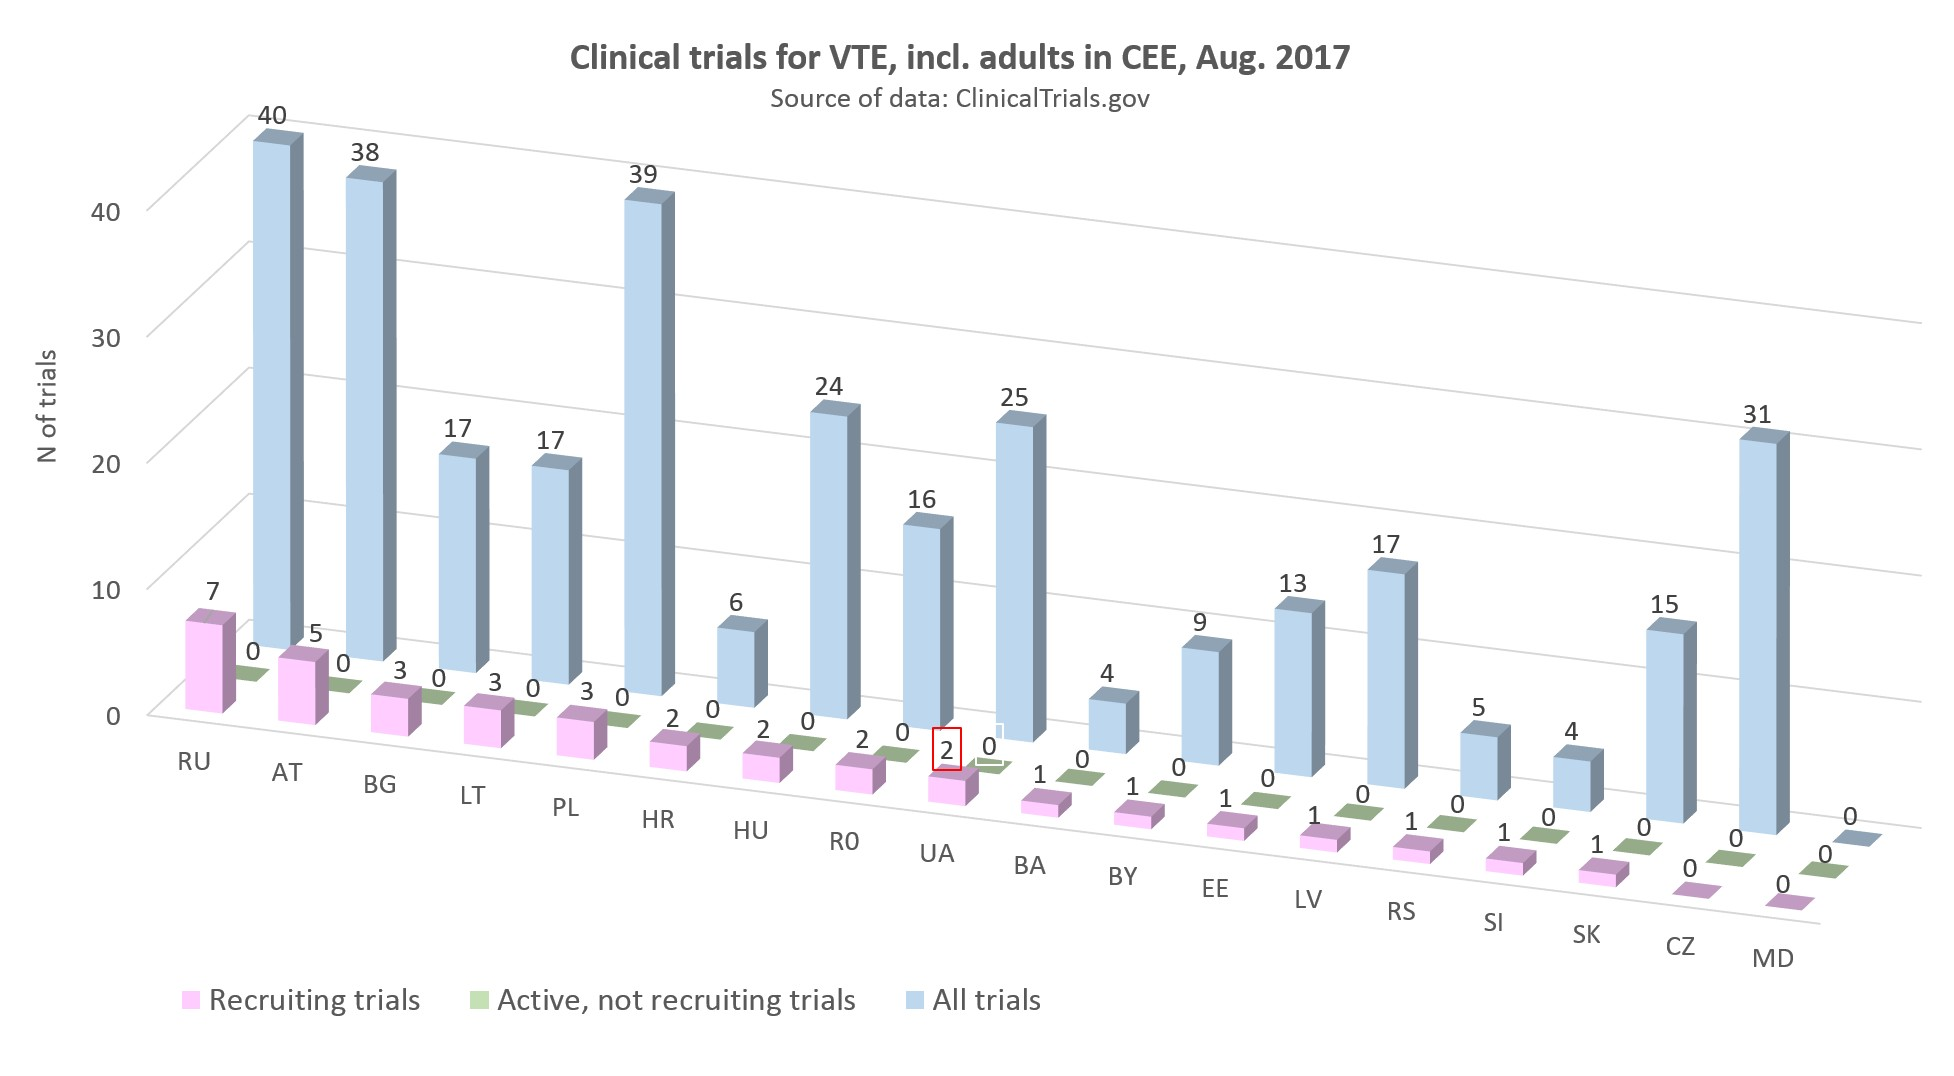 clinical trials for VTE including adults in CEE, August 2017